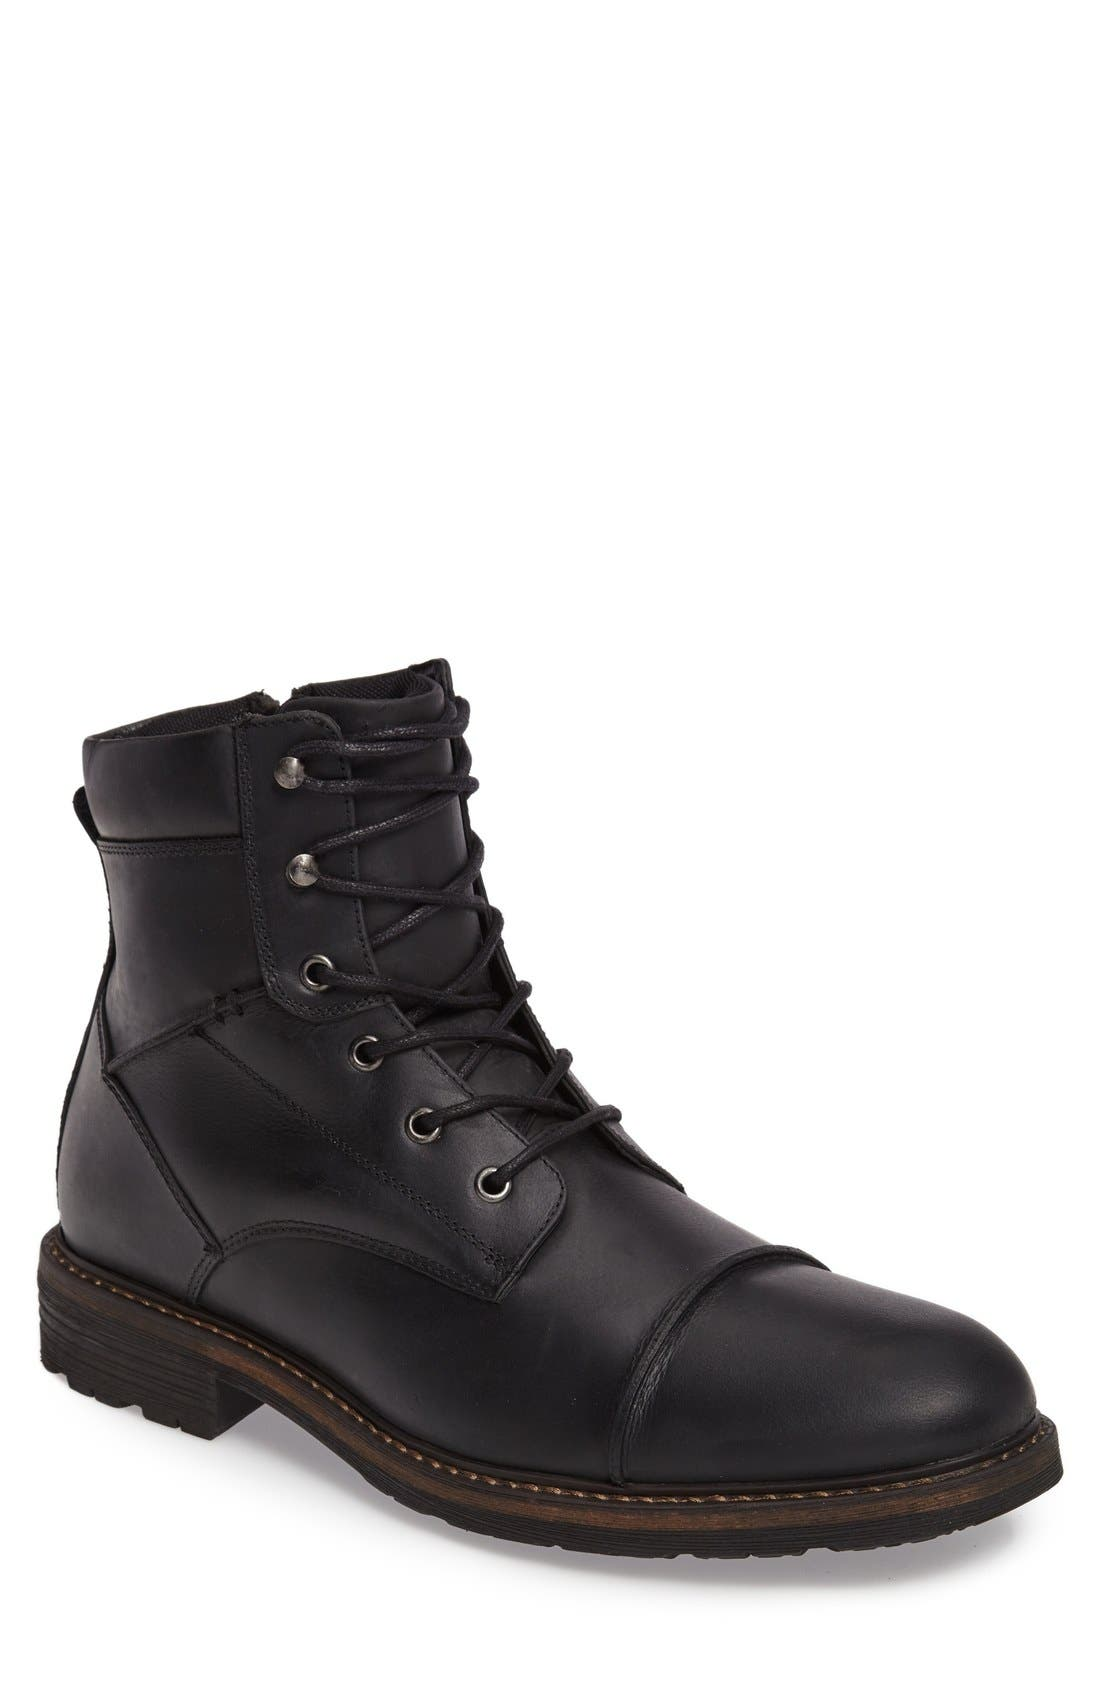 Derek Cap Toe Boot,                             Main thumbnail 1, color,                             Black Leather